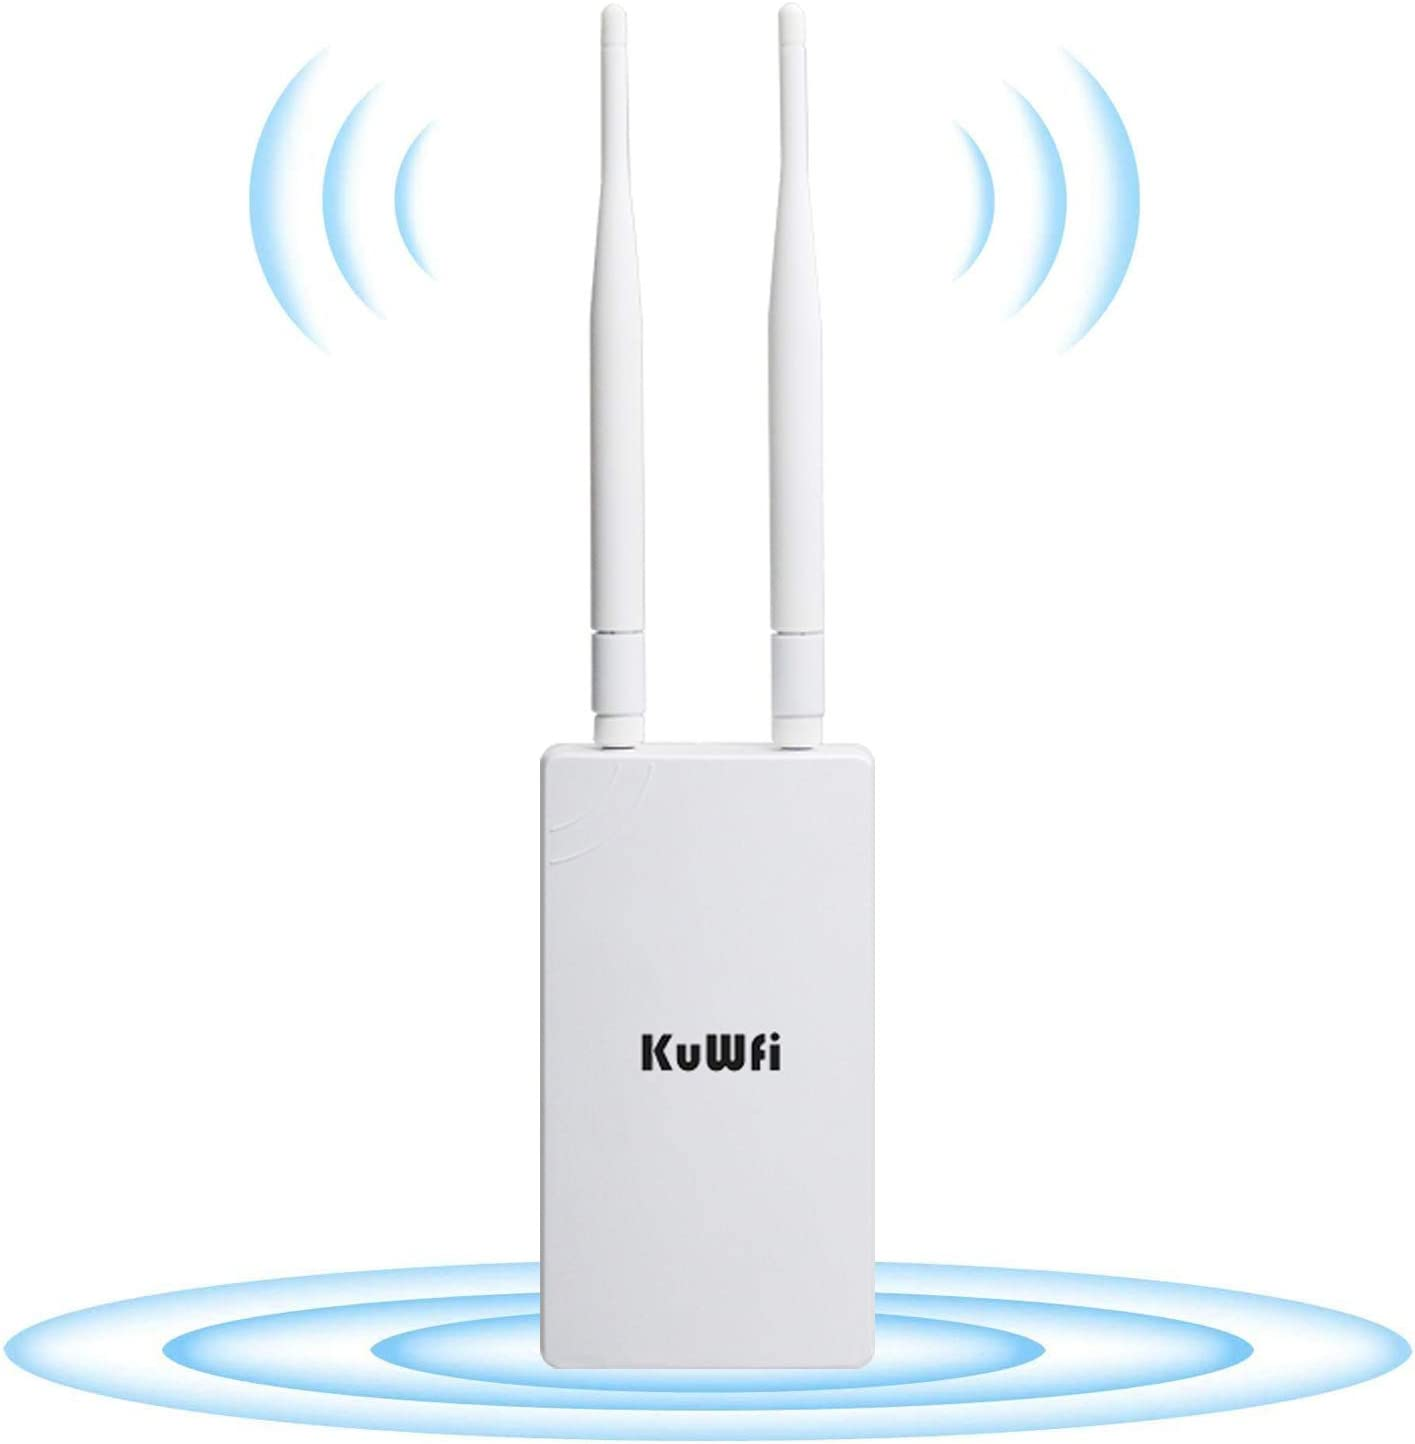 KuWFi Outdoor Wireless Access Point Long Range WiFi Router 300Mb